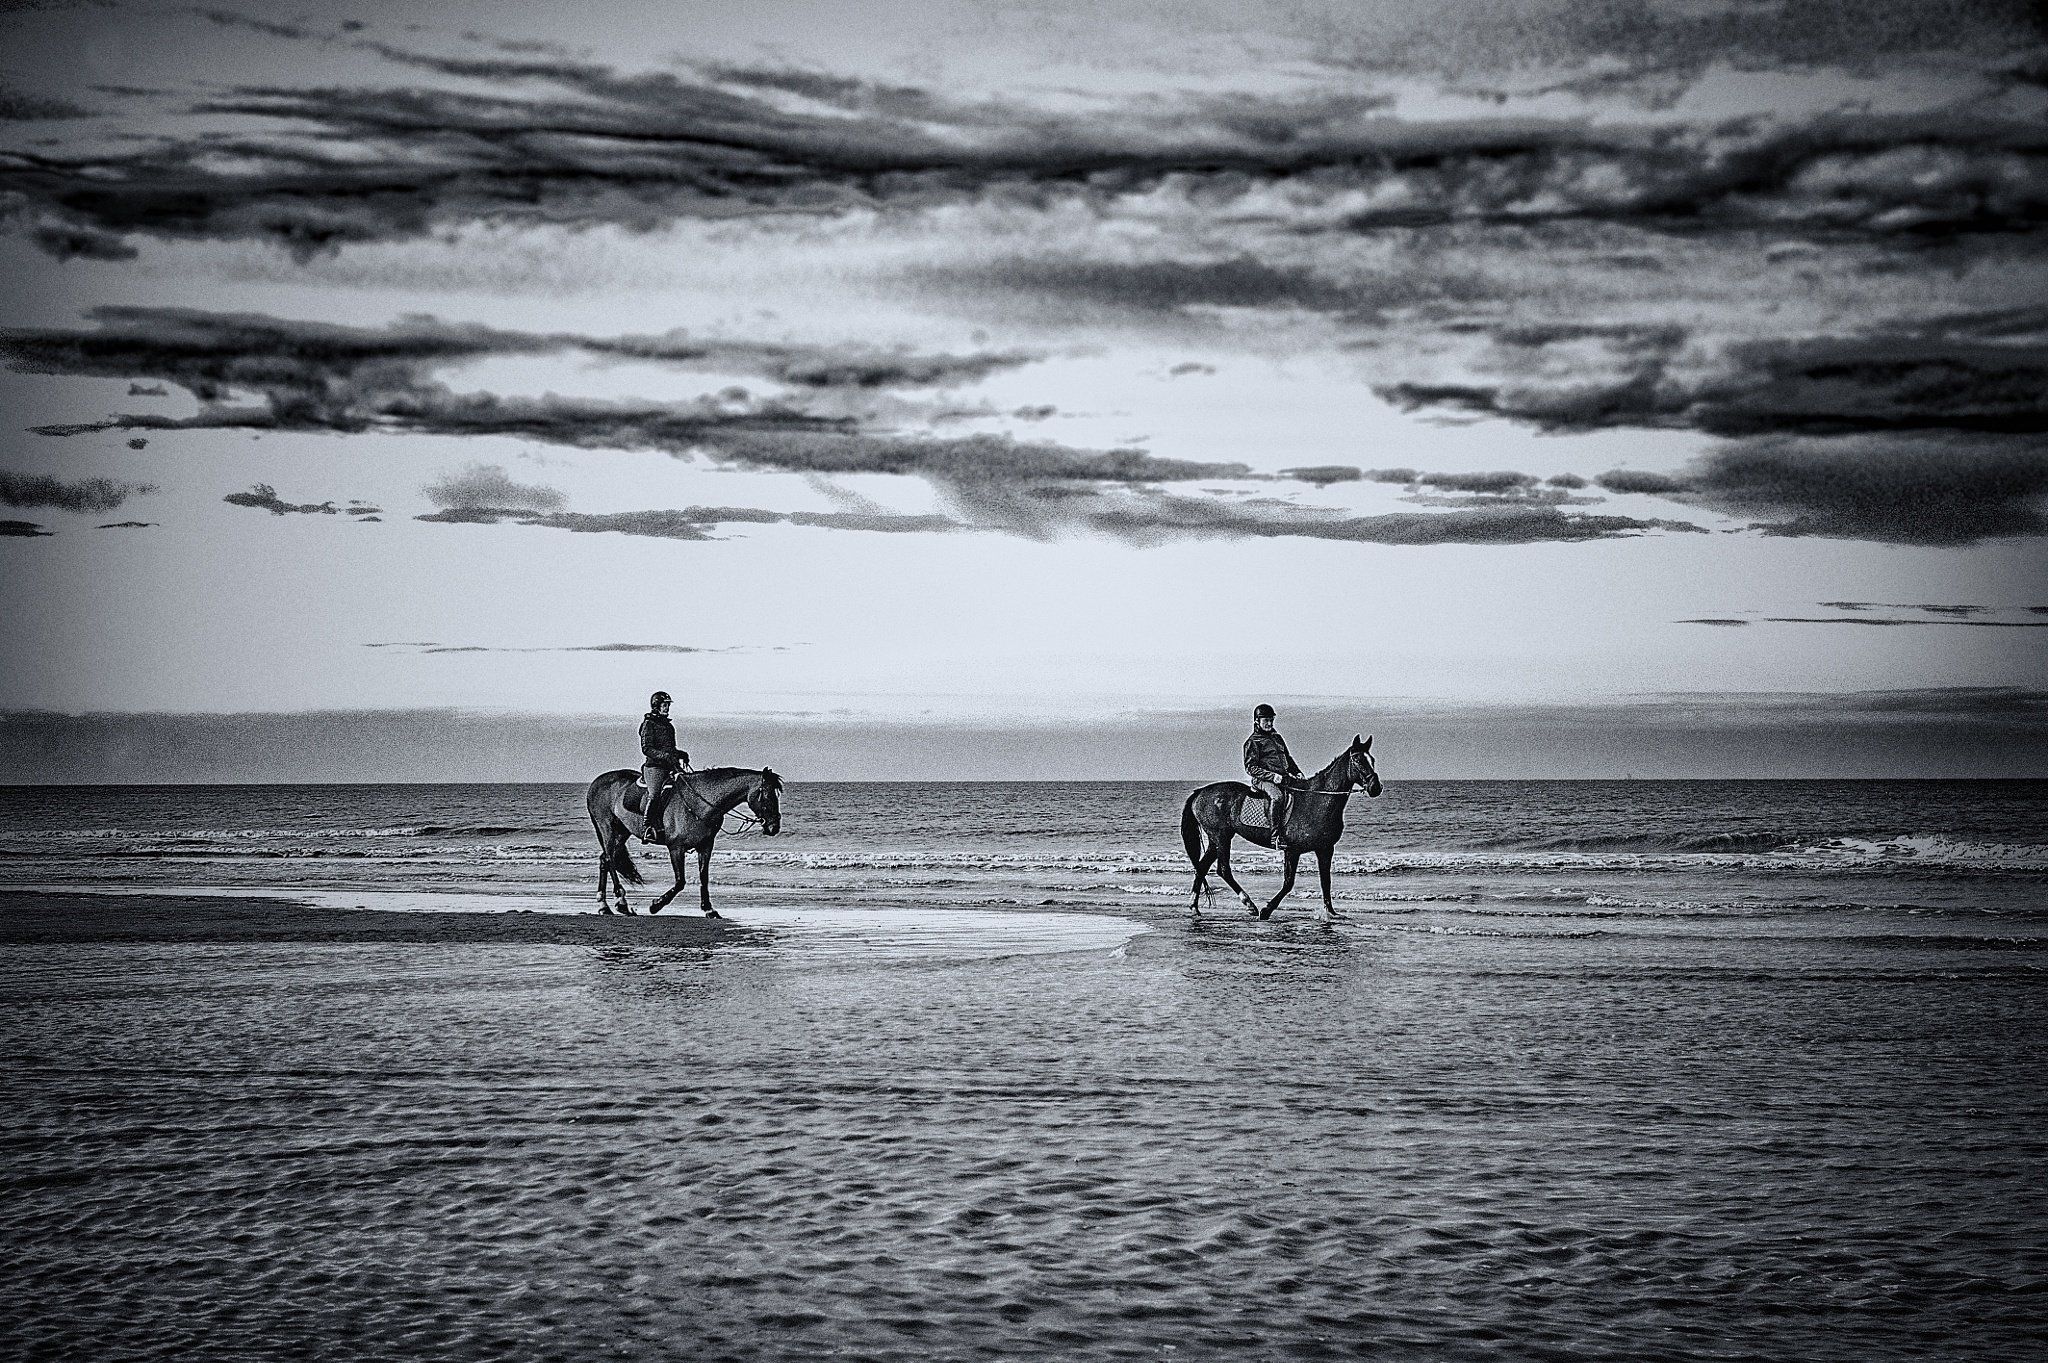 Horses with no name by rvfossoul